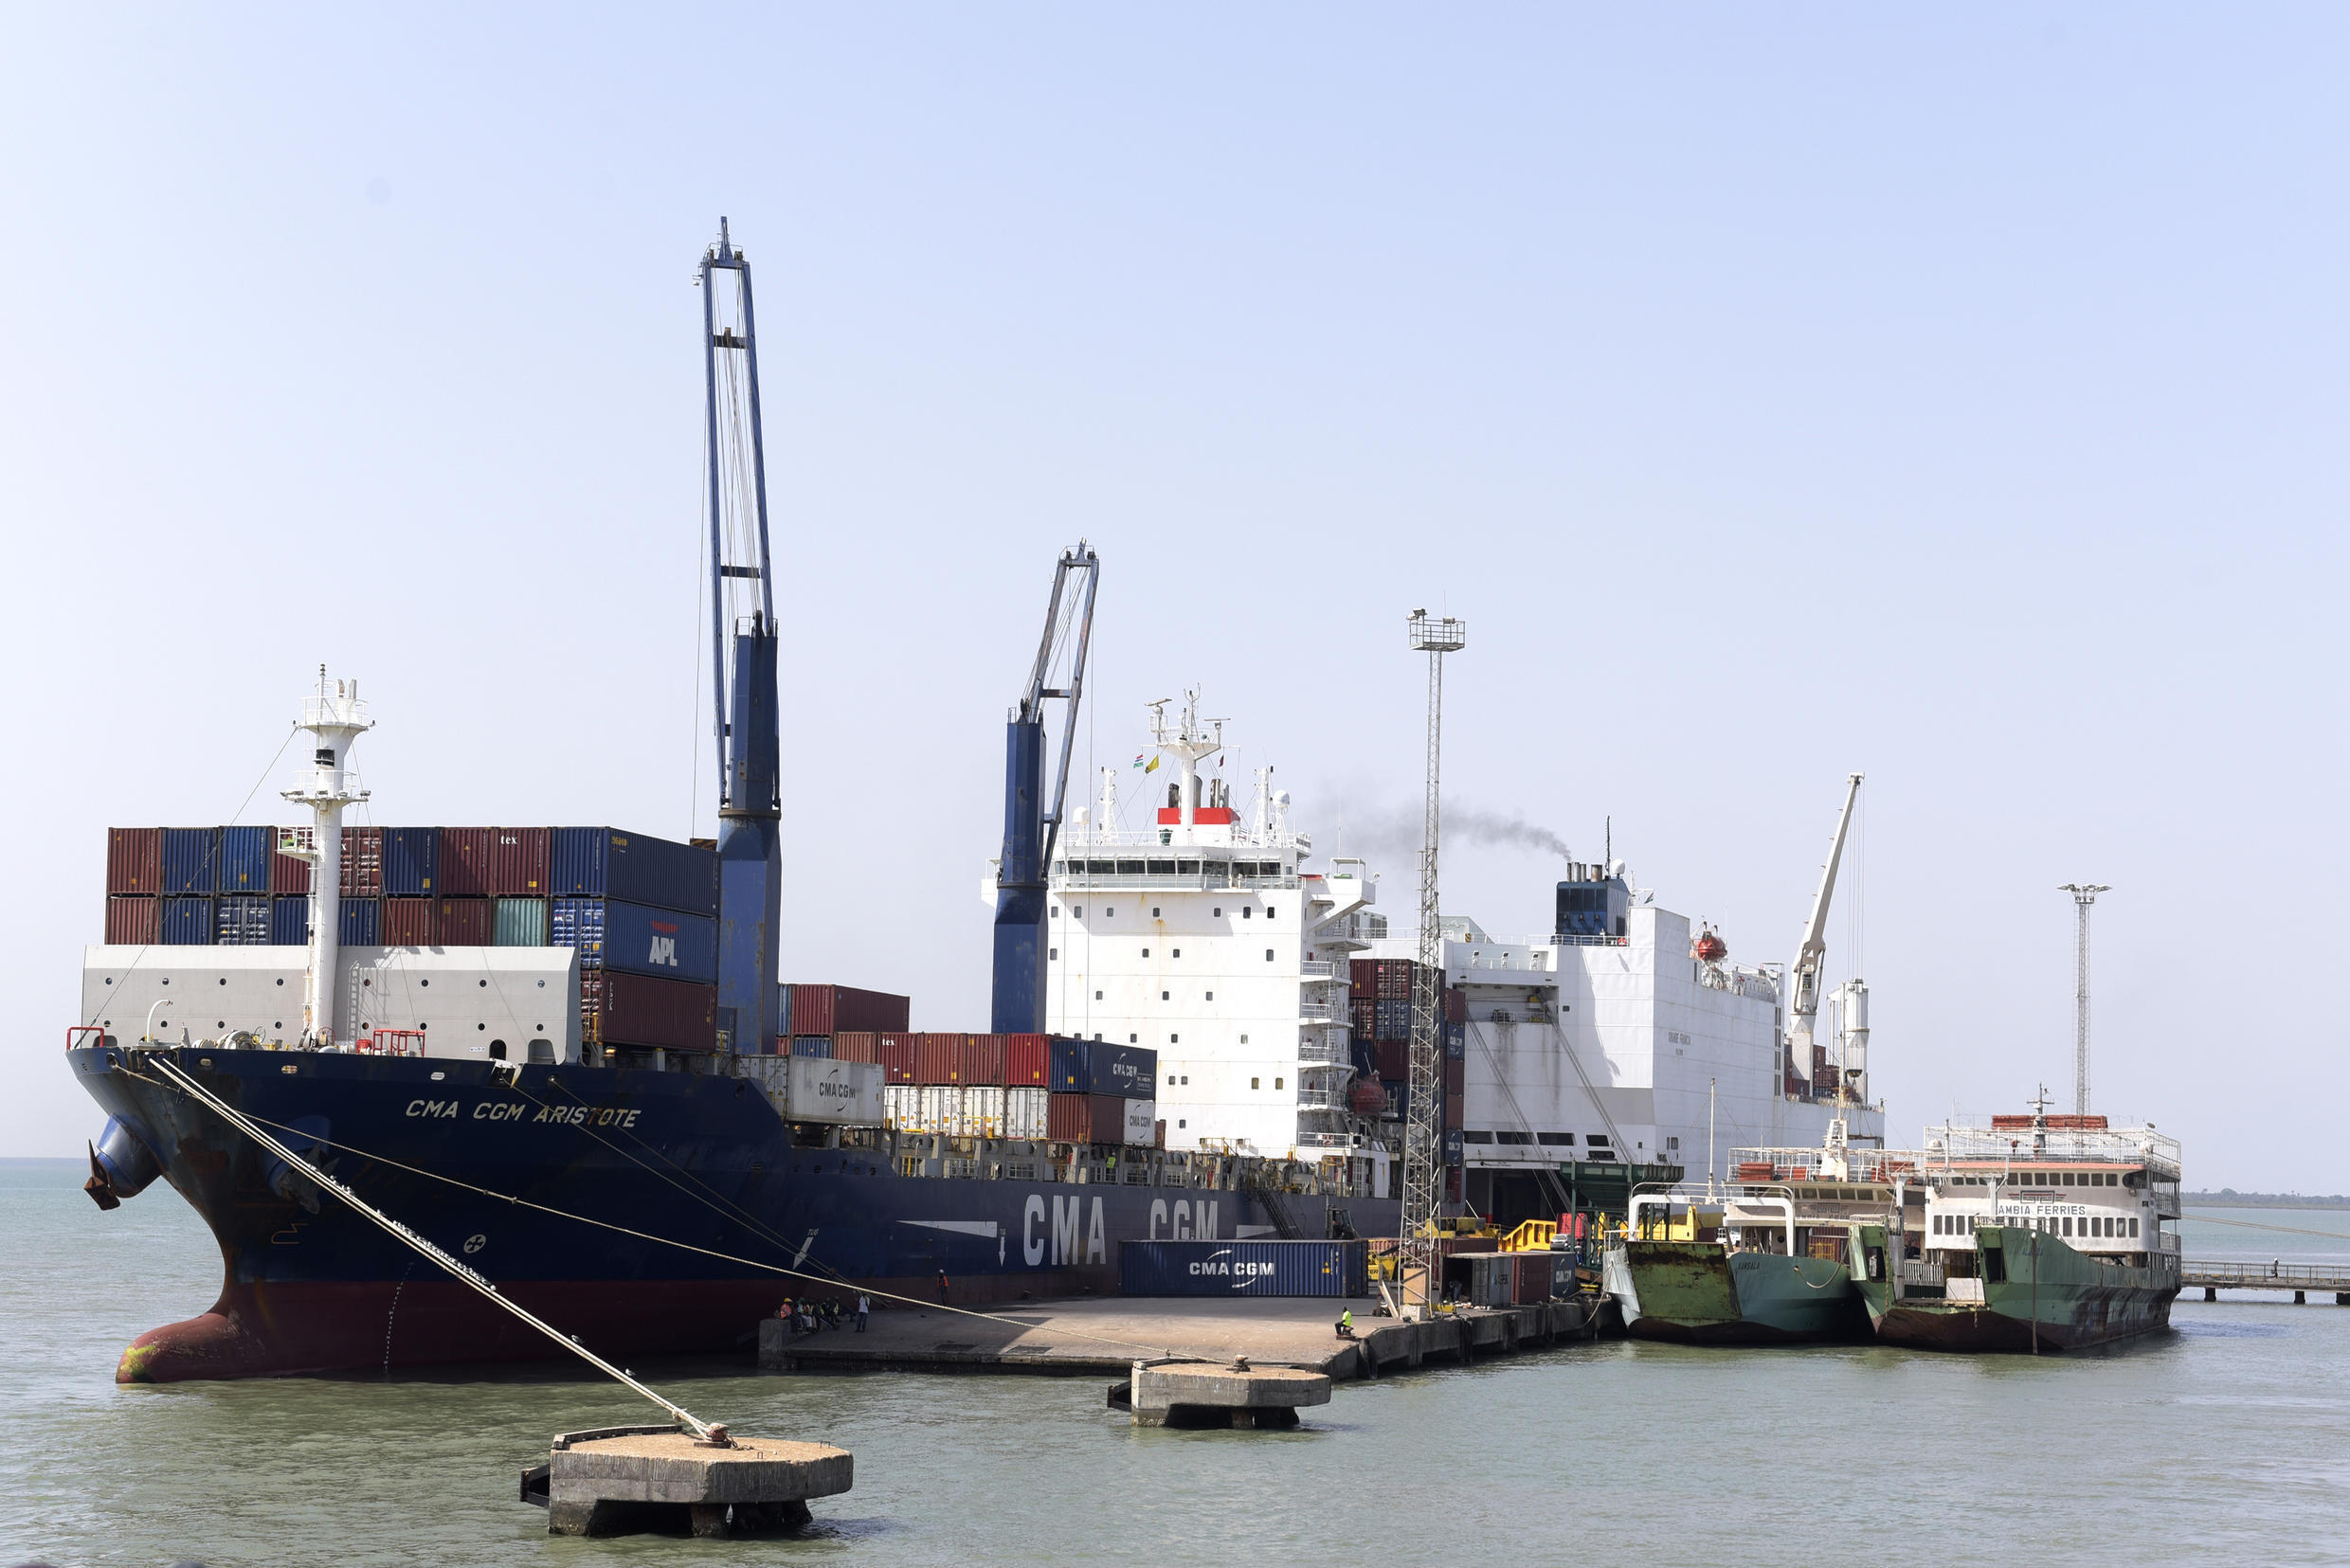 The CMA CGM Aristote container ship is docked in the port of Banjul, Gambia, on 8 April 2017.